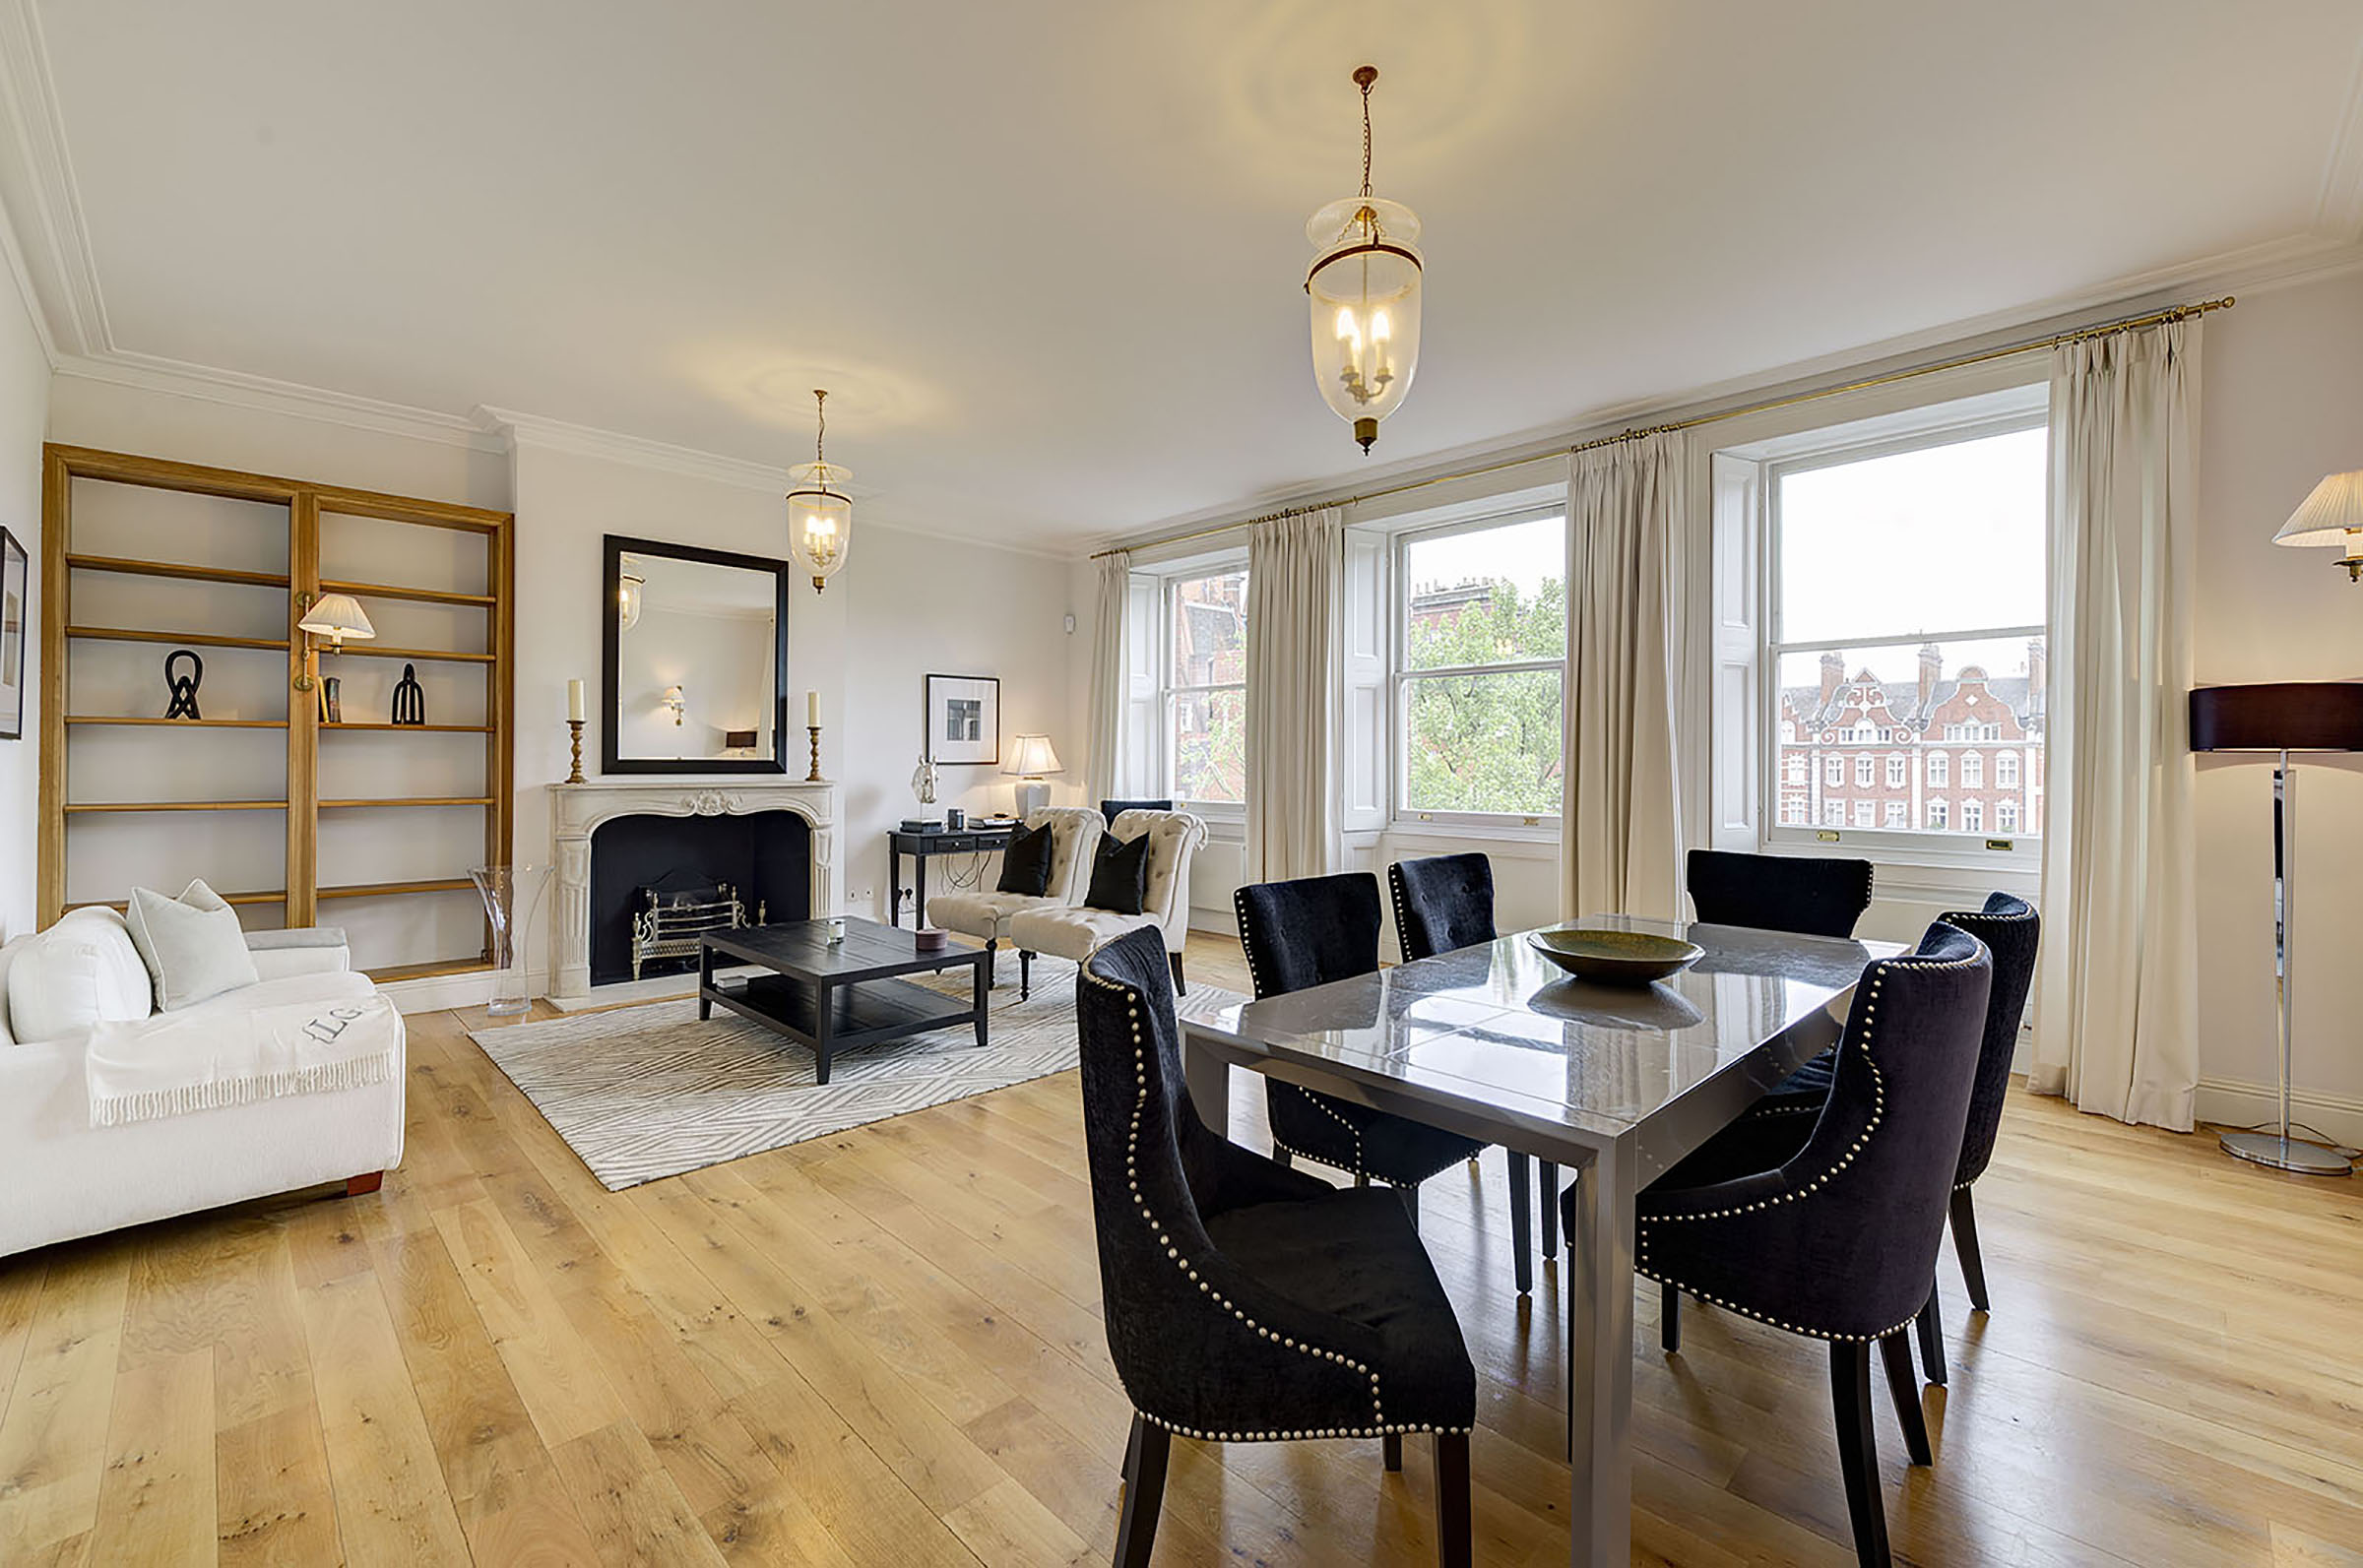 Appartement pour l Vente à Cadogan Square London, Angleterre, Royaume-Uni